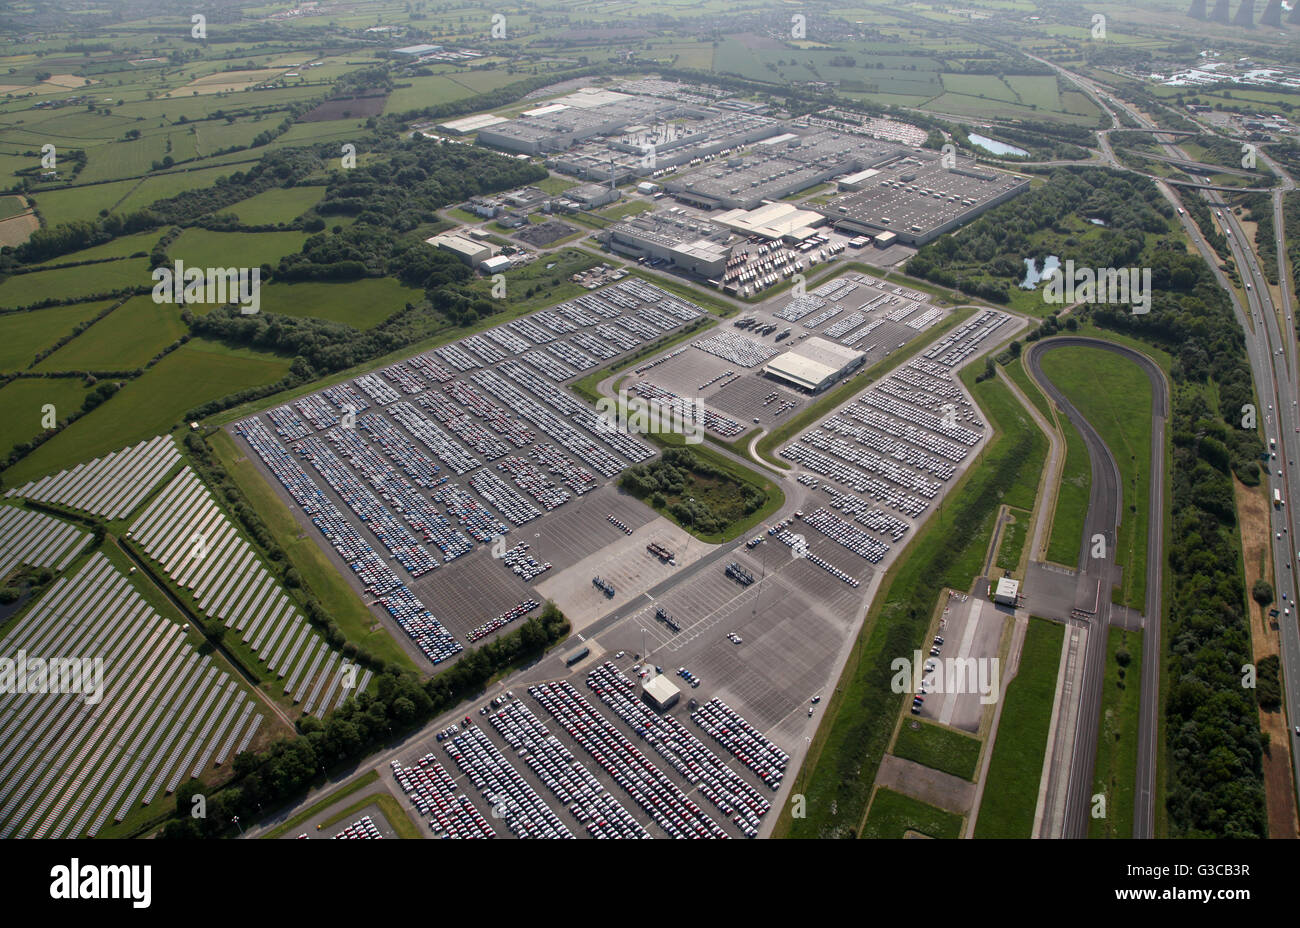 aerial view of Toyota Motor Manufacturing car production plant bear Derby, UK - Stock Image